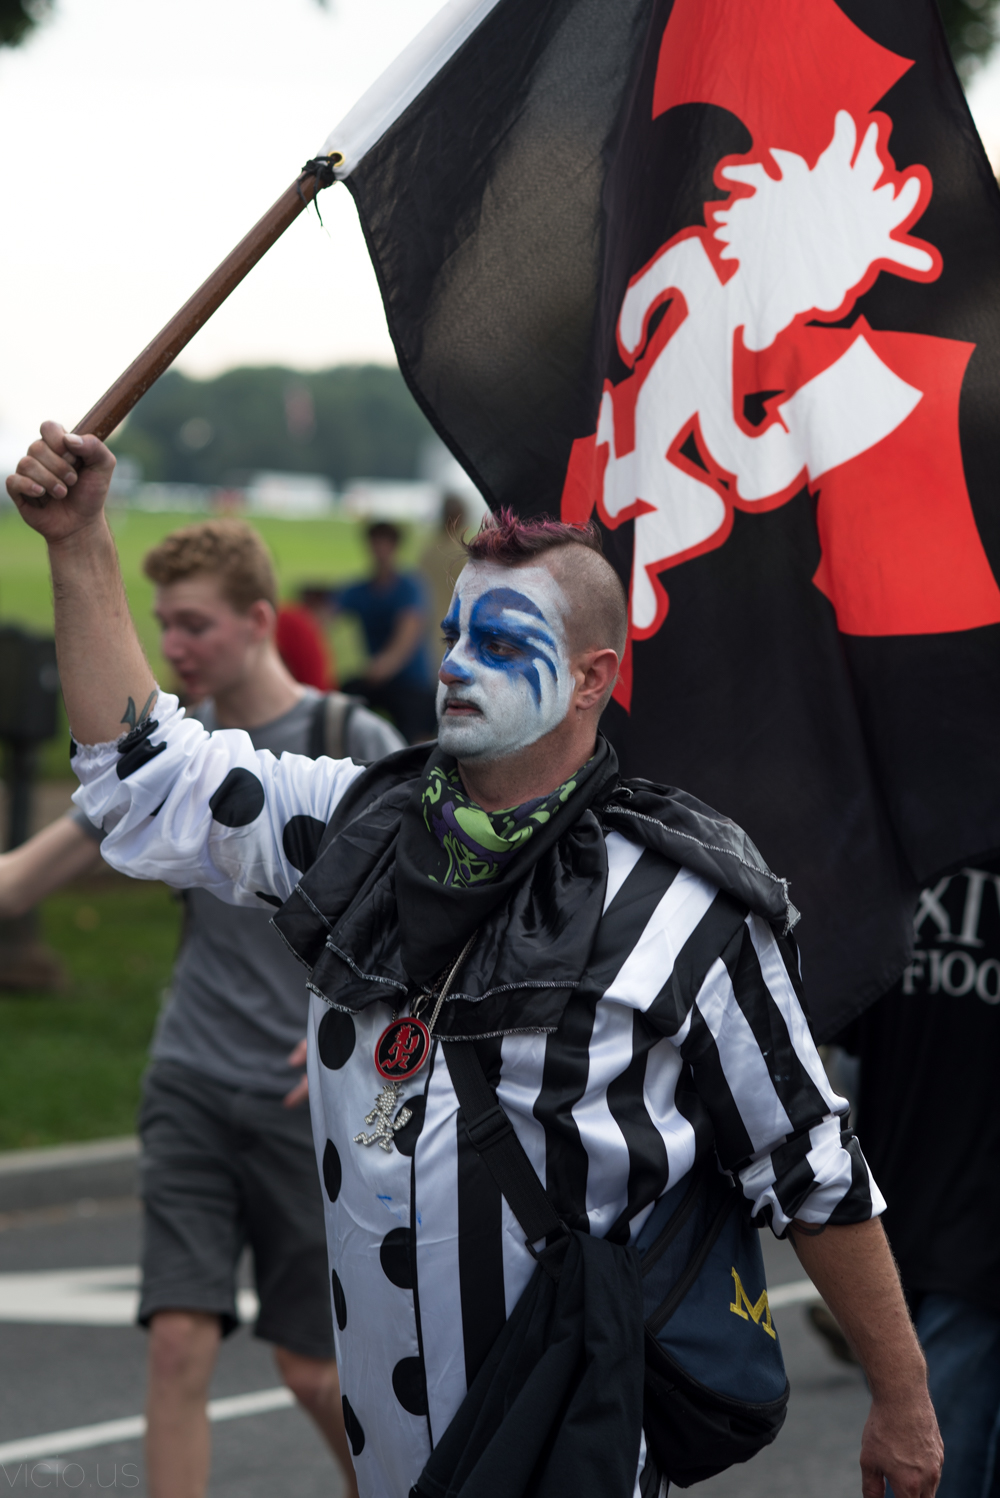 JuggaloMarch_EricCharlesPeterson_vicio.us_wm-13.jpg